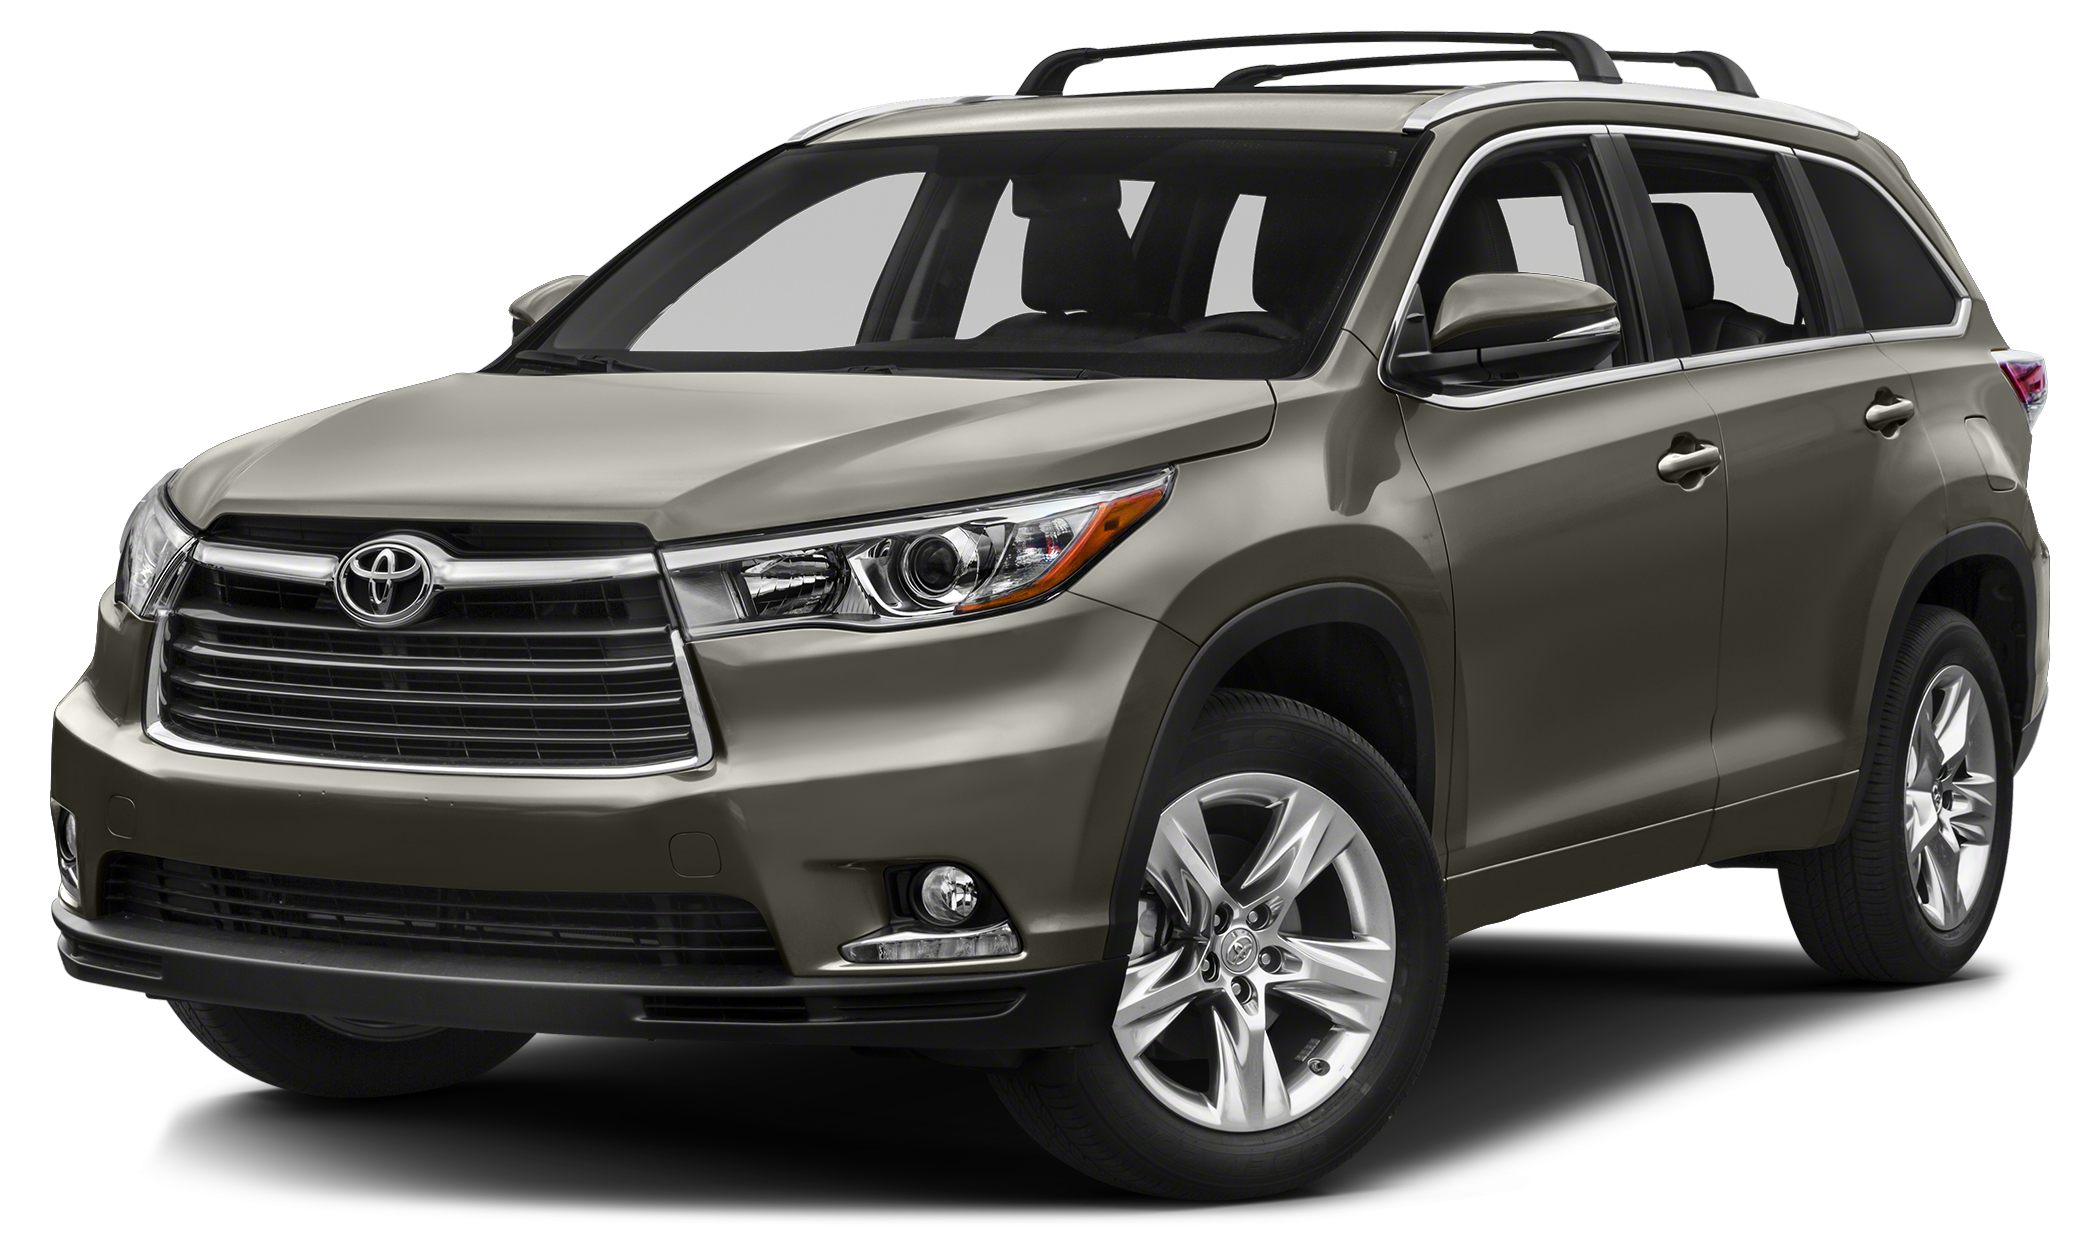 2015 Toyota Highlander XLE GREAT MILES 10775 FUEL EFFICIENT 24 MPG Hwy18 MPG City XLE trim Su